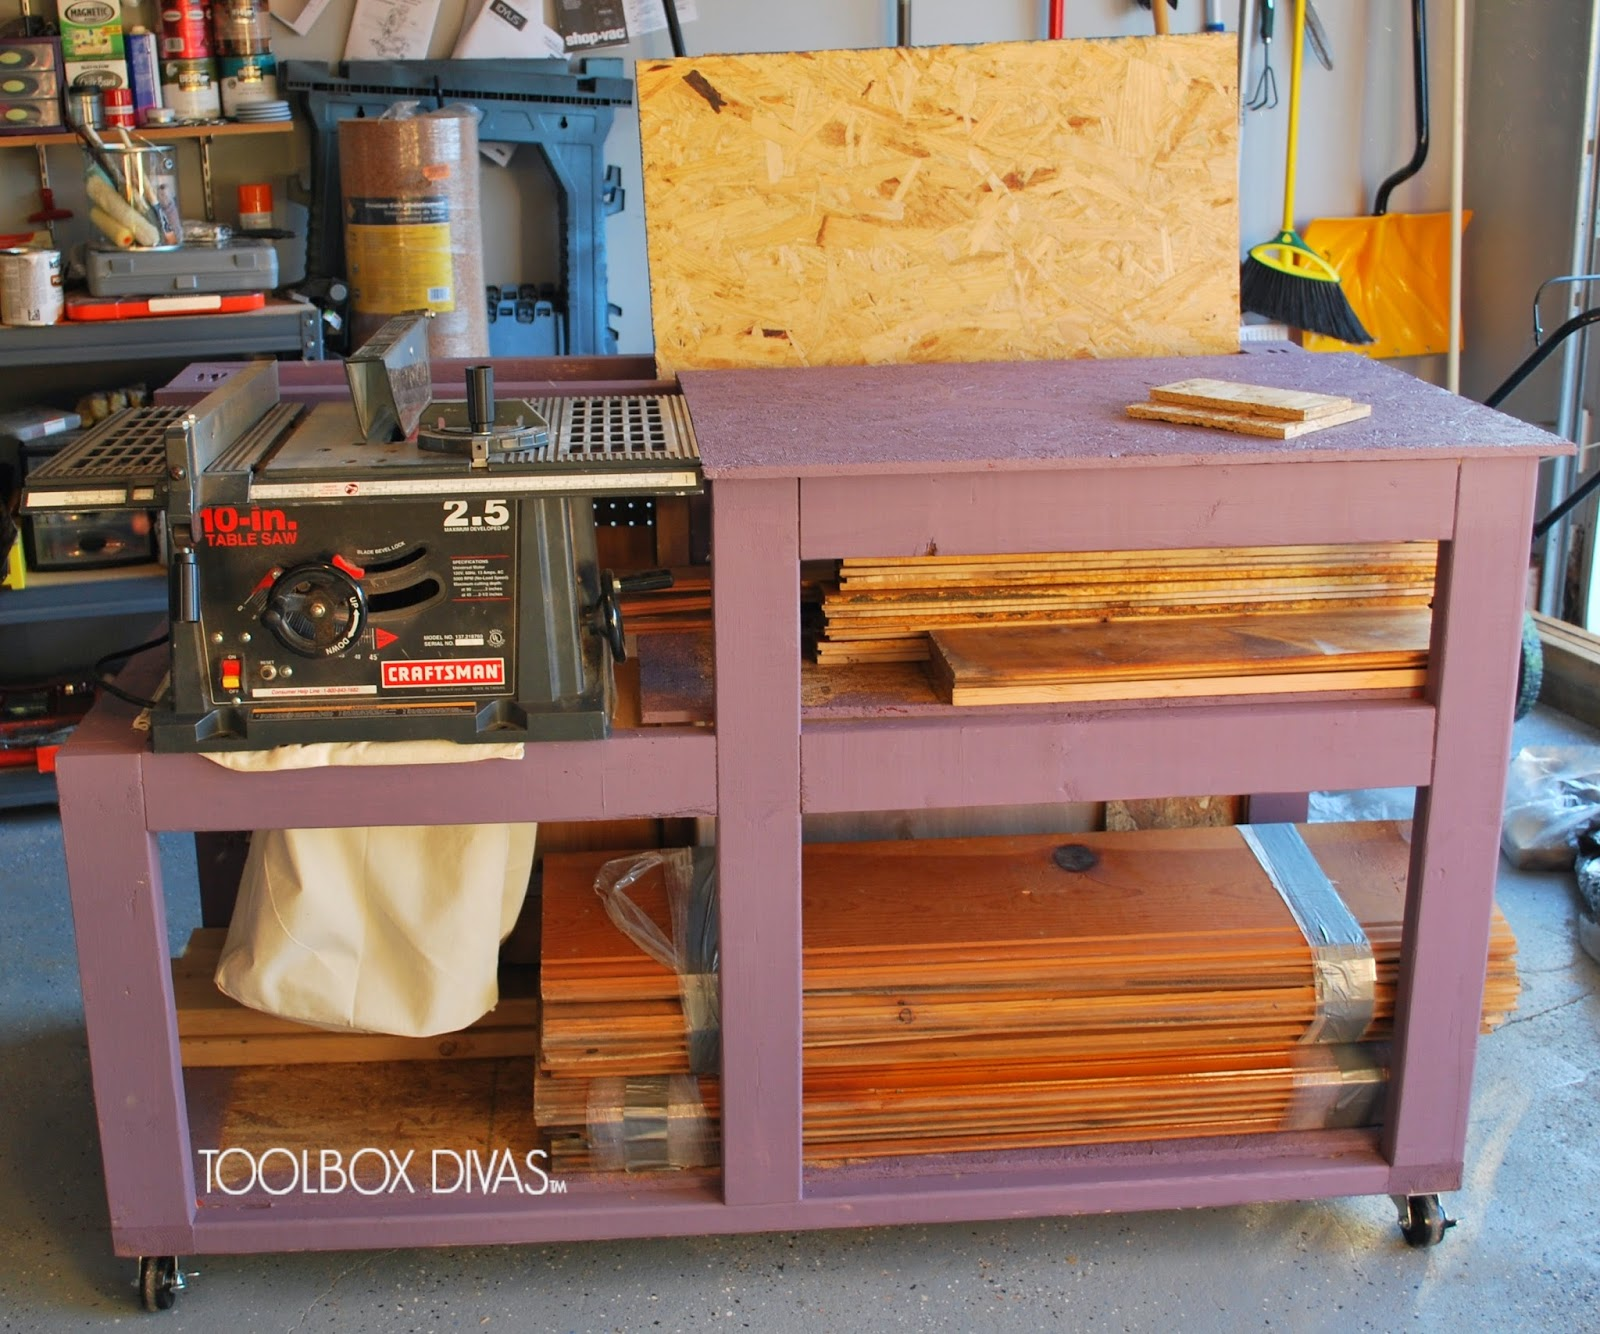 12 Super Simple Workbenches You Can Build: Table Saw Workbench With Wood Storage